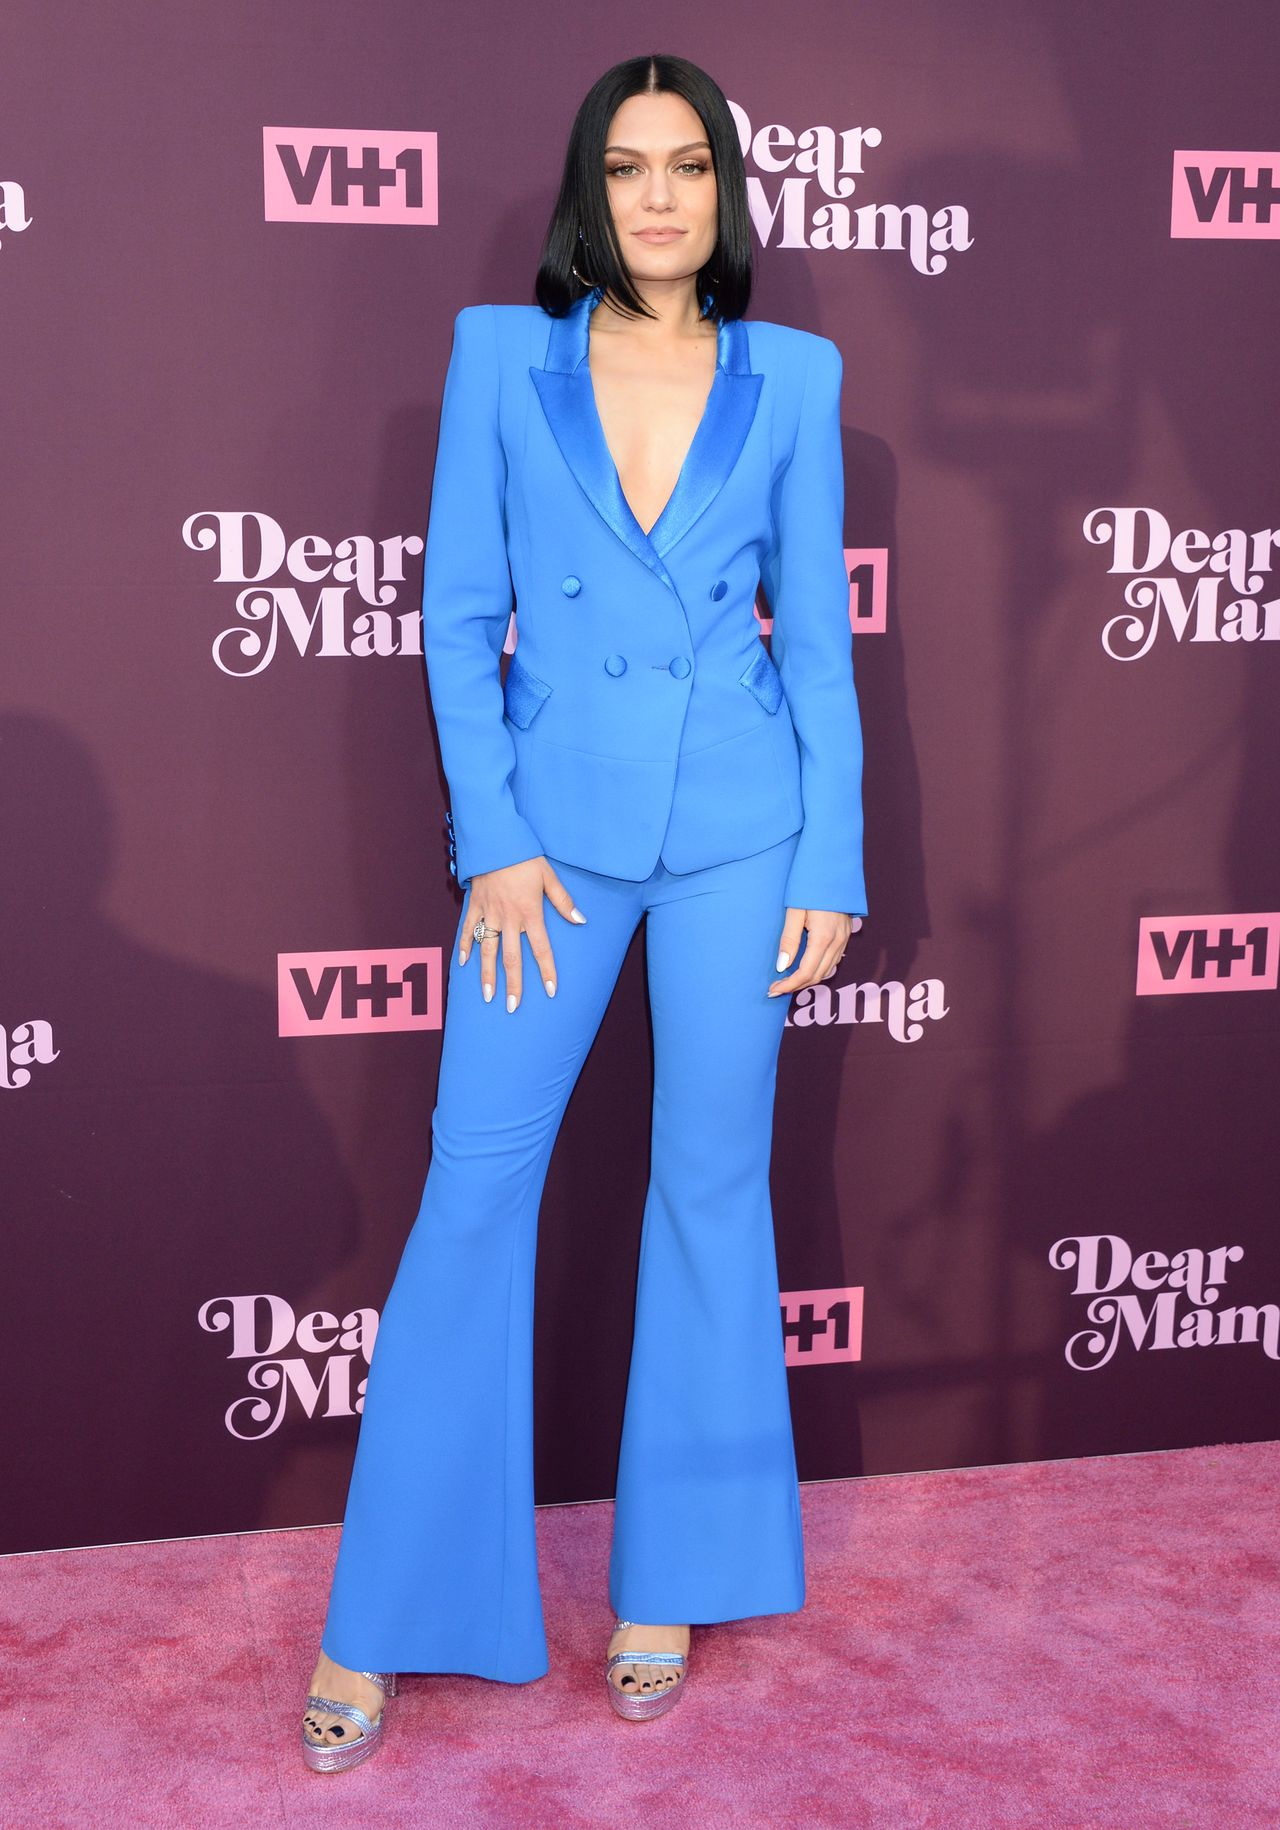 VH1 s Third Annual  Dear Mama: A Love Letter to Moms  special event